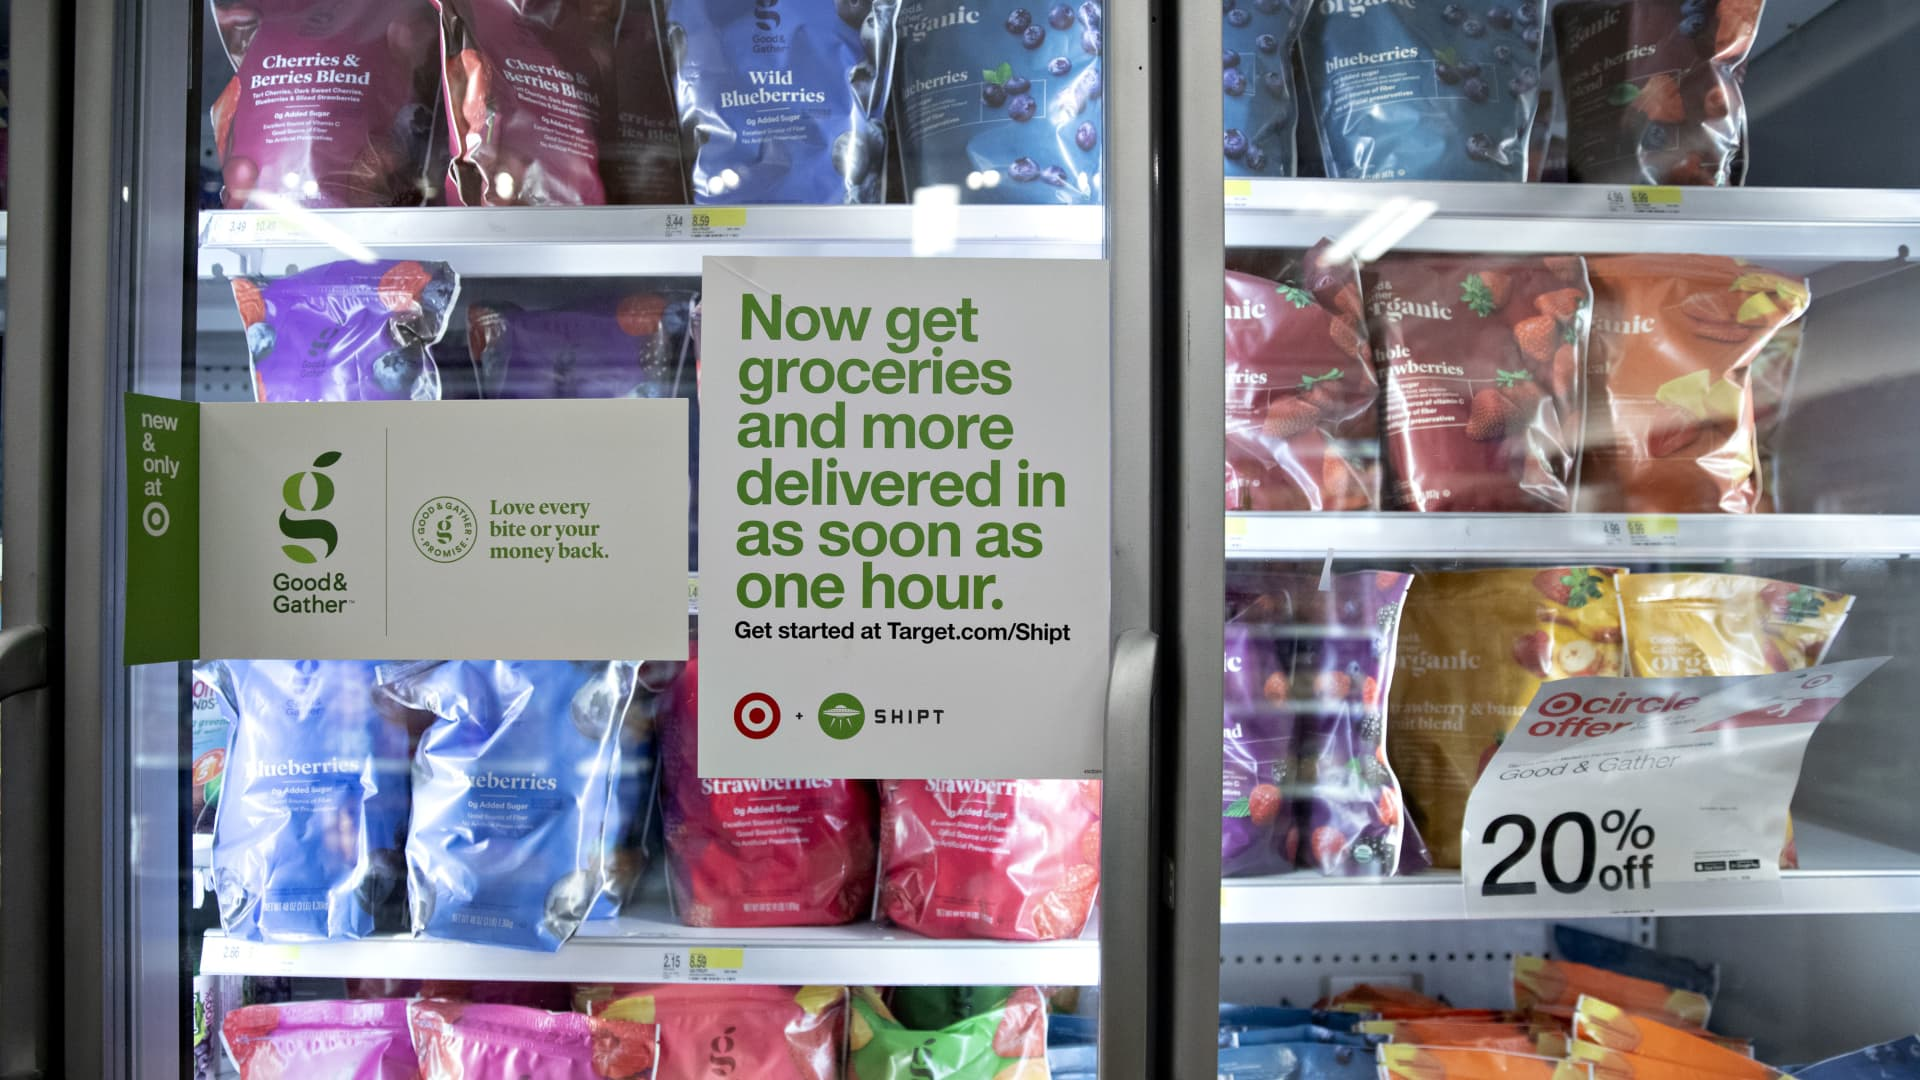 A sign advertising Shipt, the same-day grocery delivery service owned by Target, is displayed on a frozen food display case at a Target Corp. store in Chicago, Illinois, U.S., on Saturday, Nov. 16, 2019.